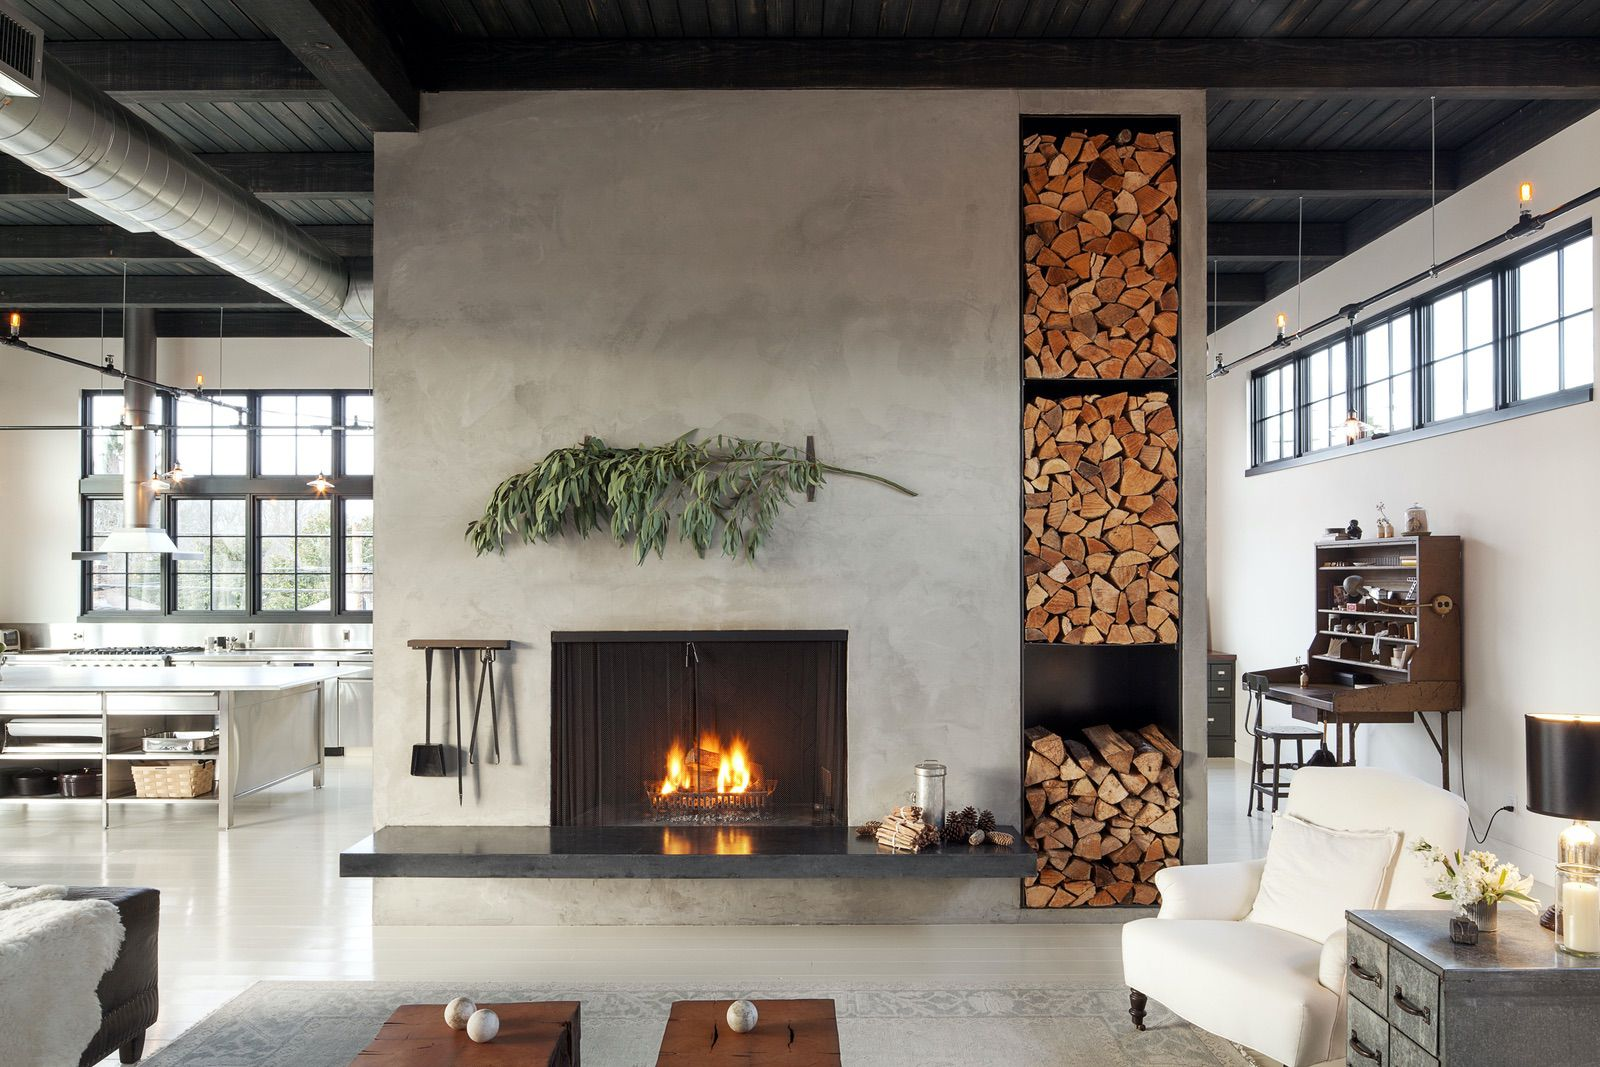 Division-Fireplace copy.jpg